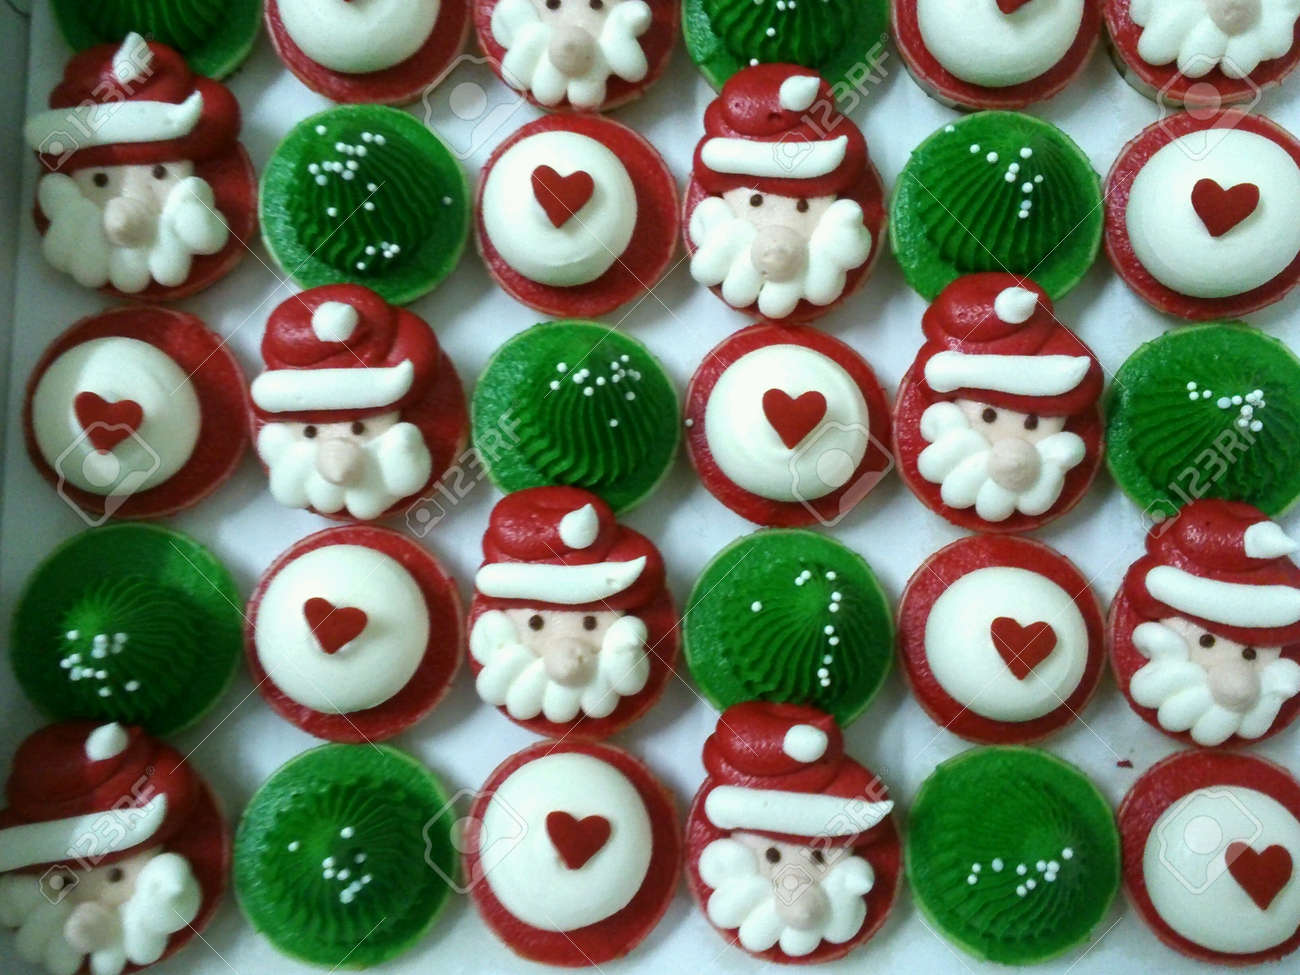 Delicious Christmas Themed Cupcakes Stock Photo, Picture And ...